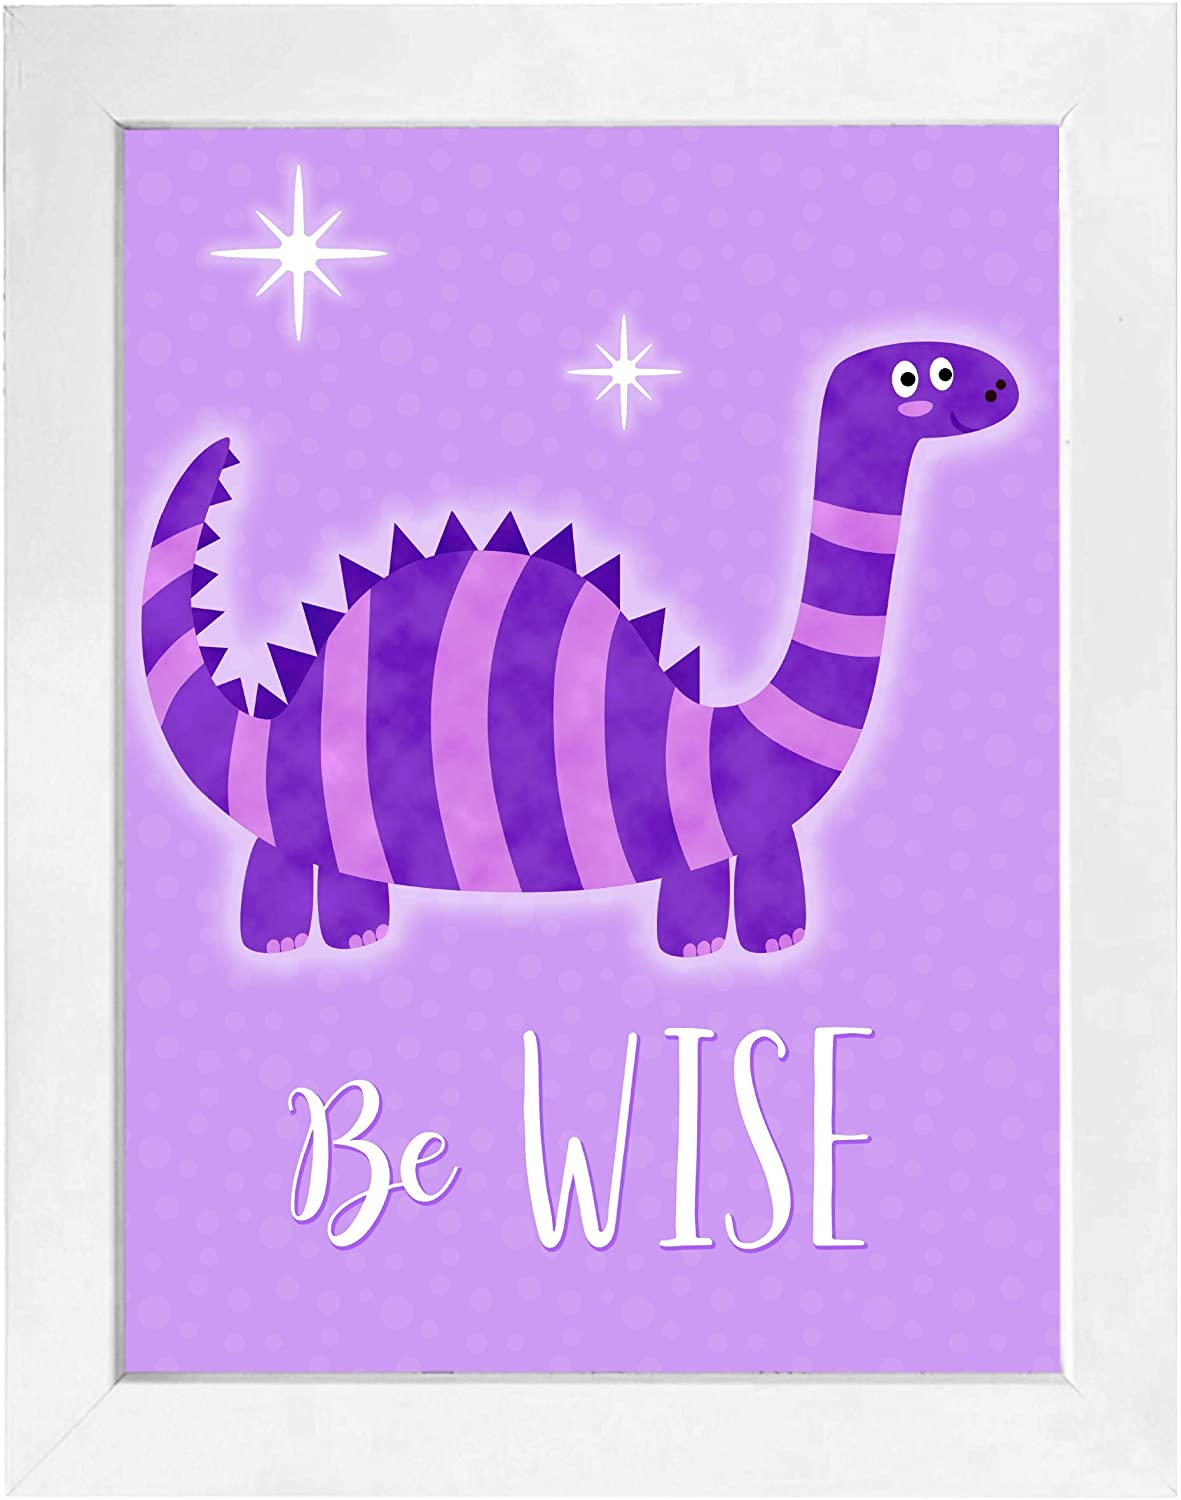 Dinosaur Framed Wall Art | Perfect for Kids Rooms, Nursery, Home Decor (1pc - Be Wise - White Frame, 8x10)